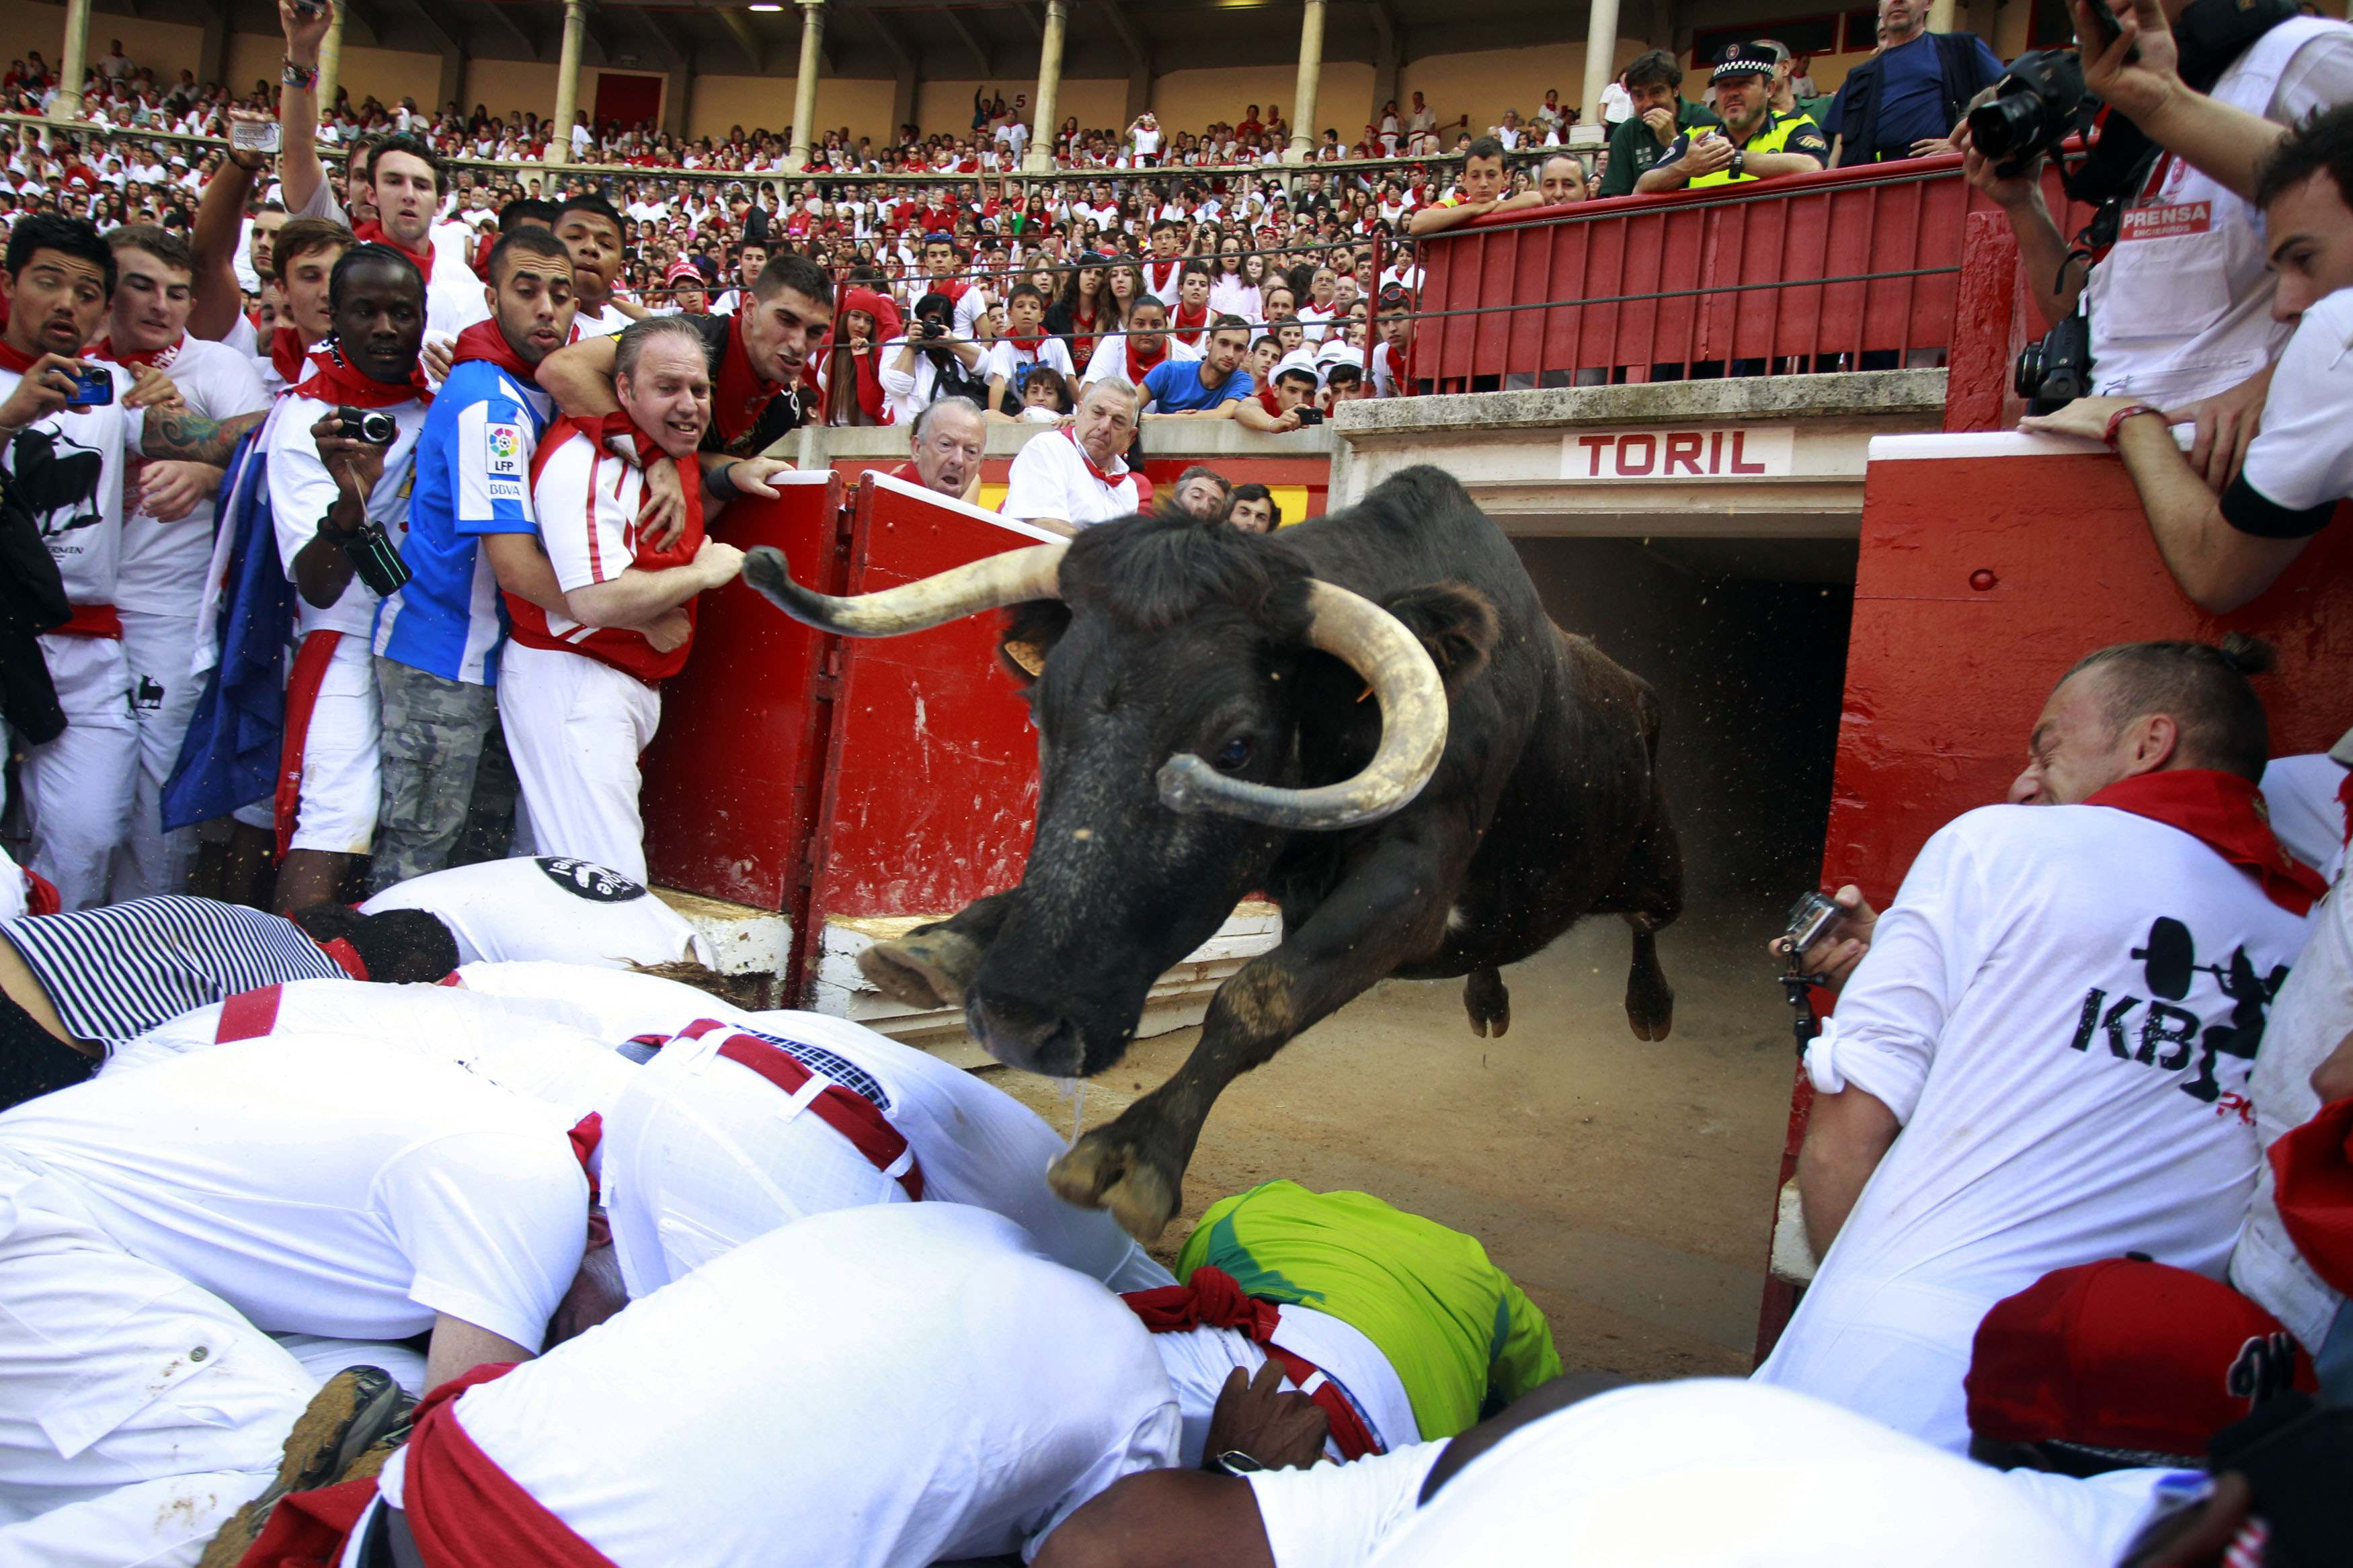 Gallery: Brit gets gored by bulls at Pamplona